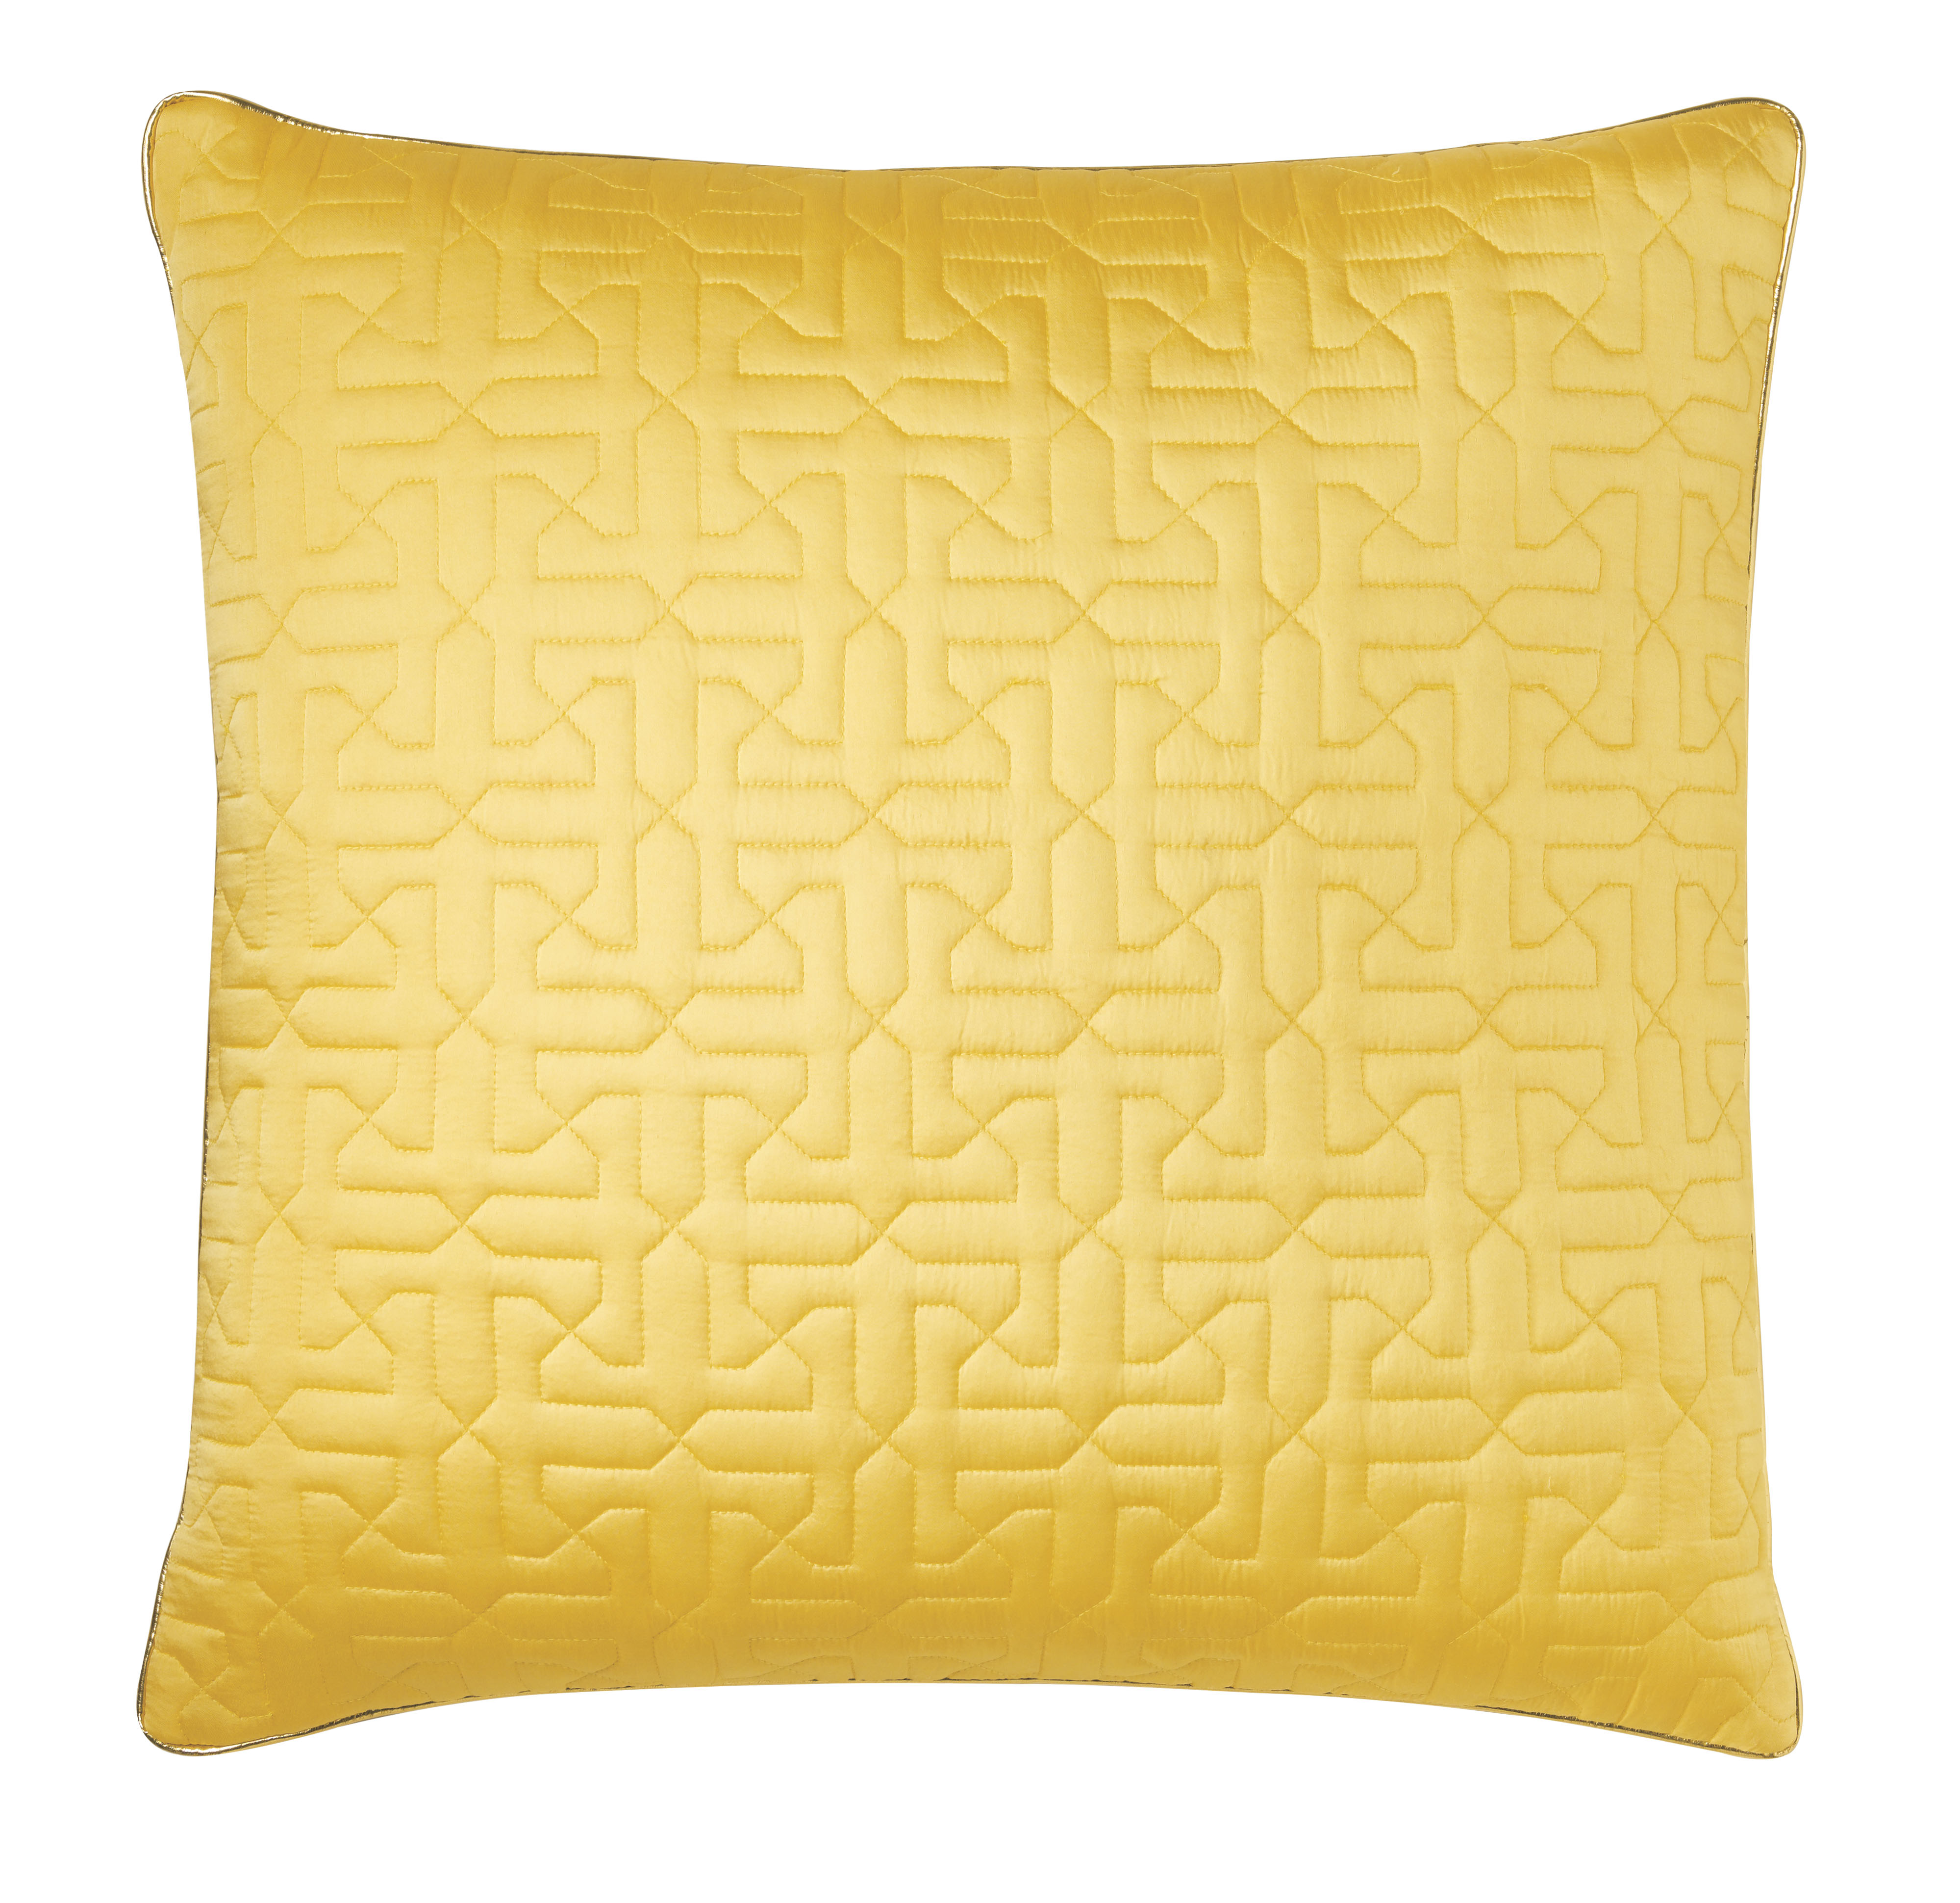 Throw Pillow Deals : Sferra Dini Decorative Pillow Mega Deals and Coupons